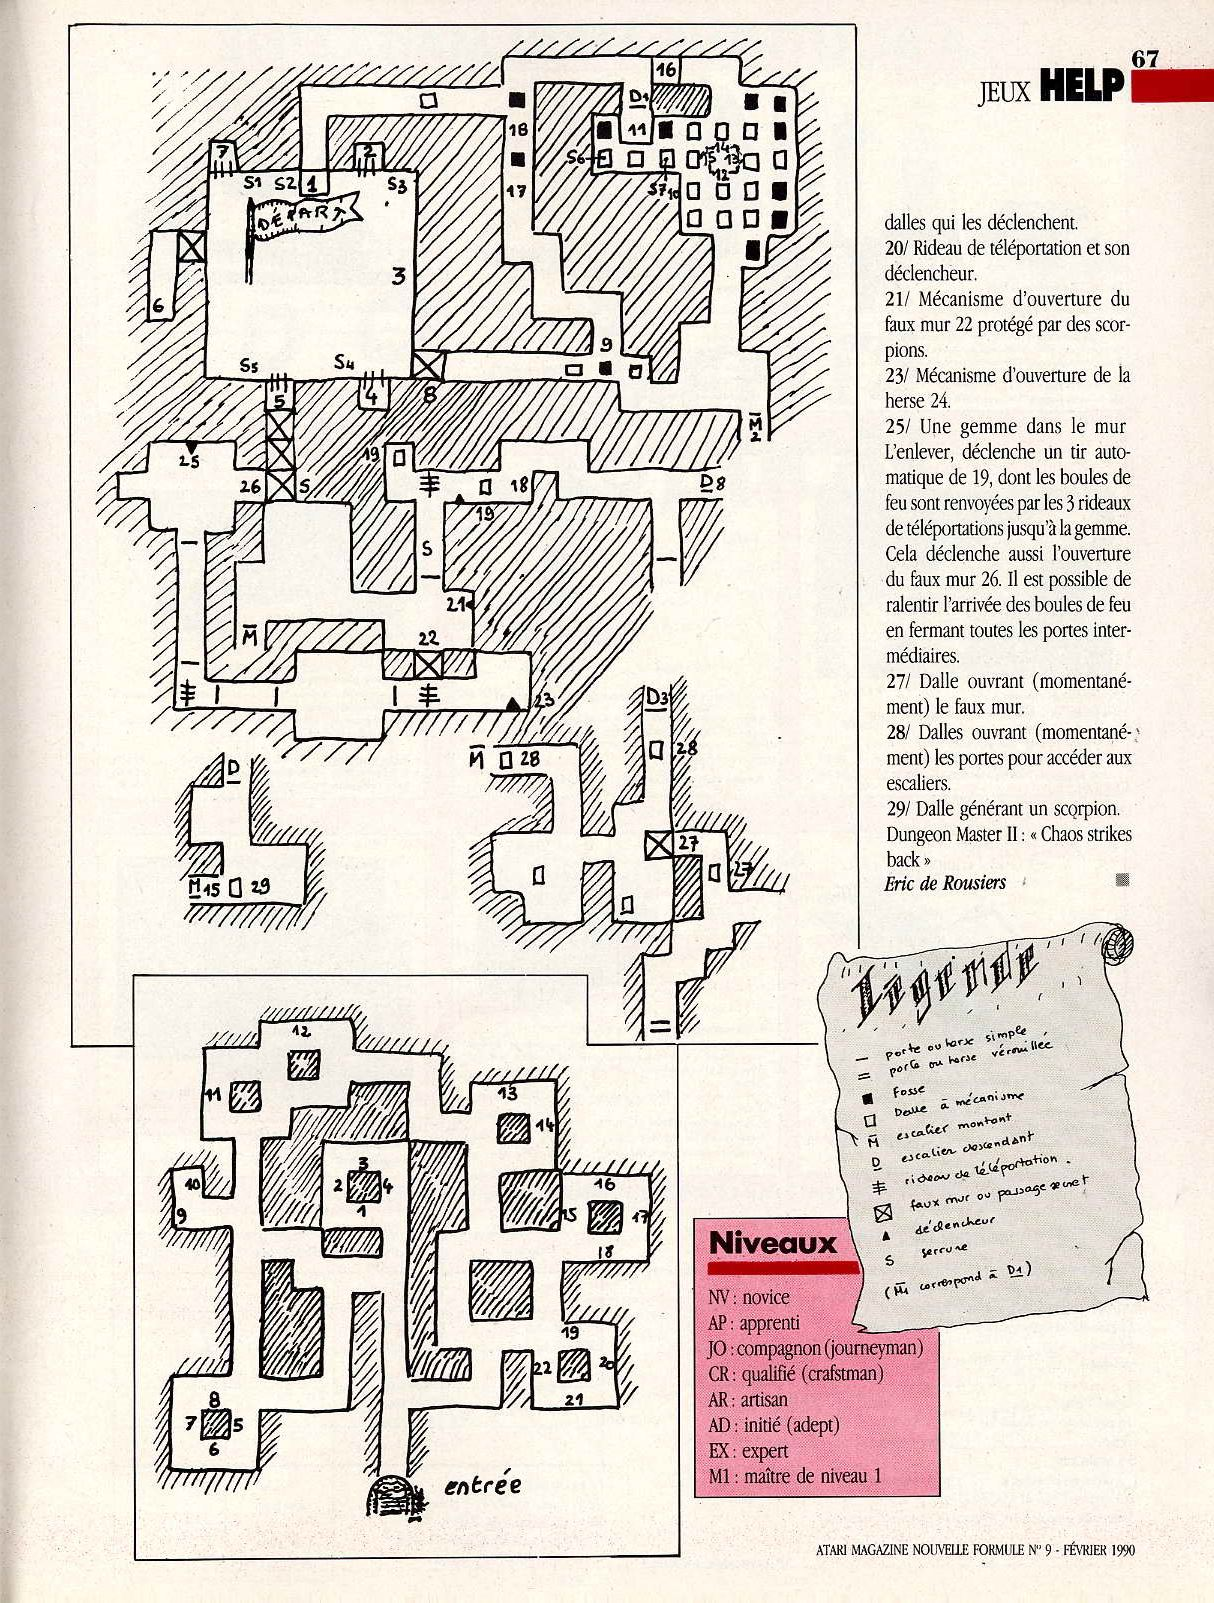 Chaos Strikes Back Hints published in French magazine 'Atari Magazine', Issue #9 February 1990, Page 67